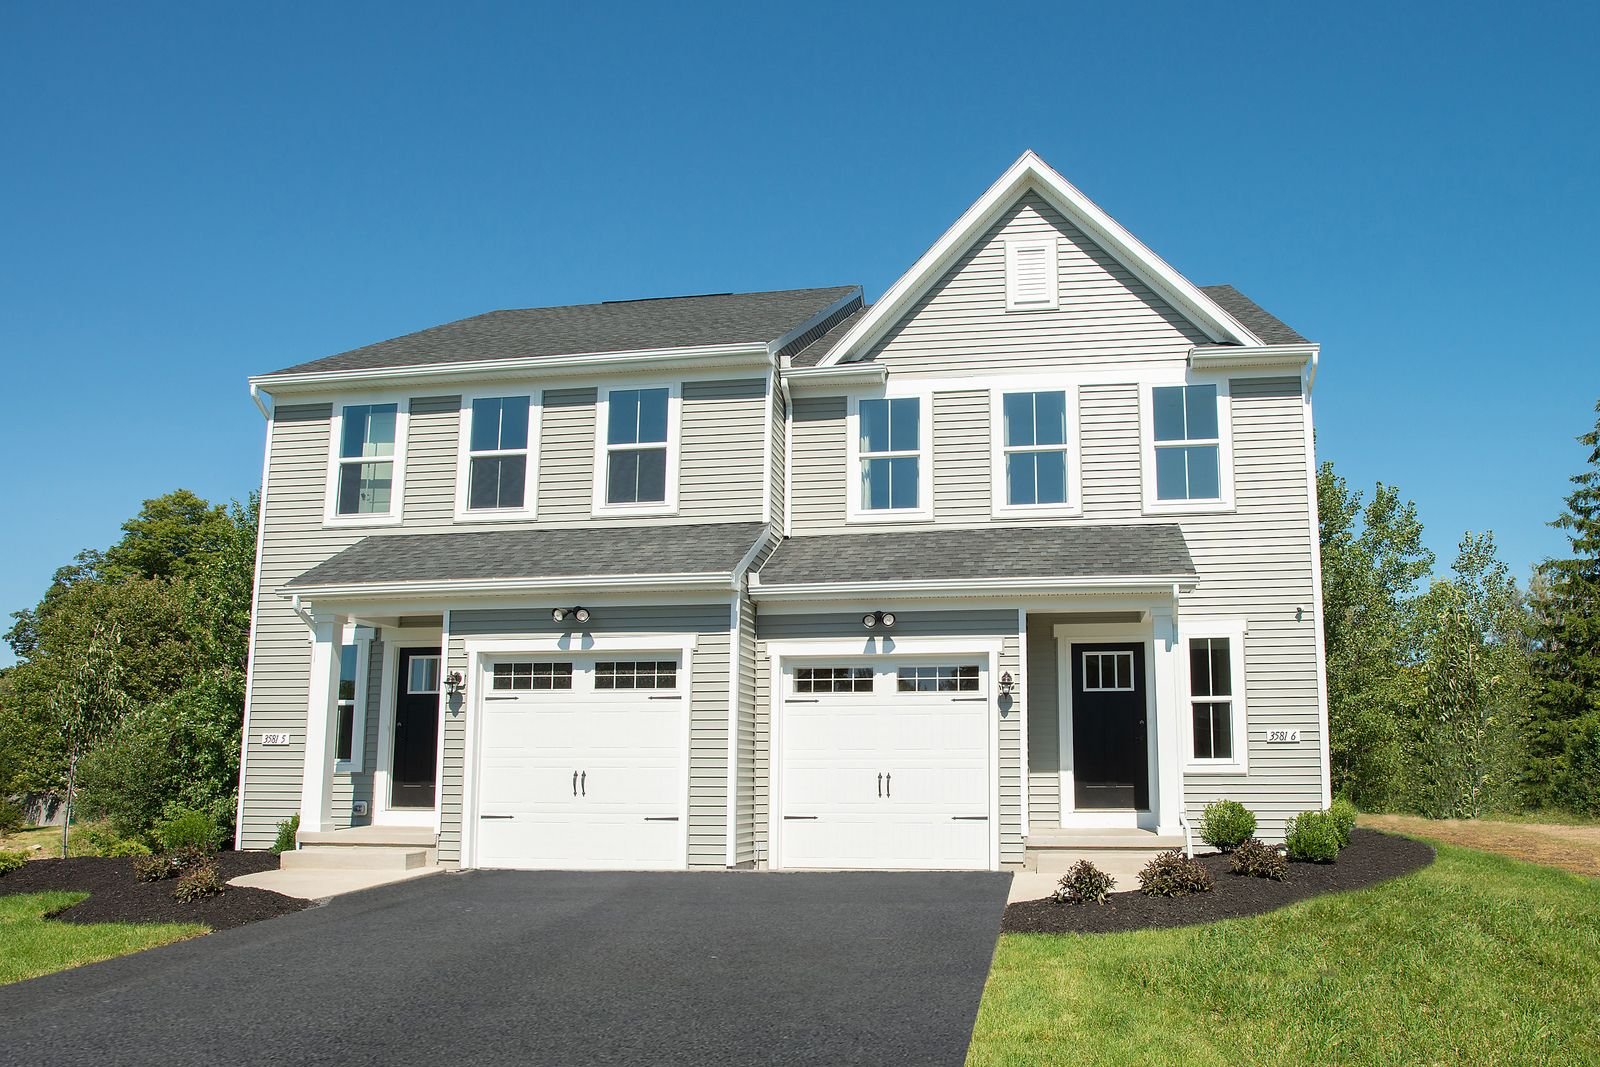 WELCOME TO BIG TREE TOWNHOMES:Own for less than rent! The lowest priced and only new townhomes in Hamburg with 3 bedrooms, 2.5 baths and a garage, appliances included.Click here toschedule your appointment today!